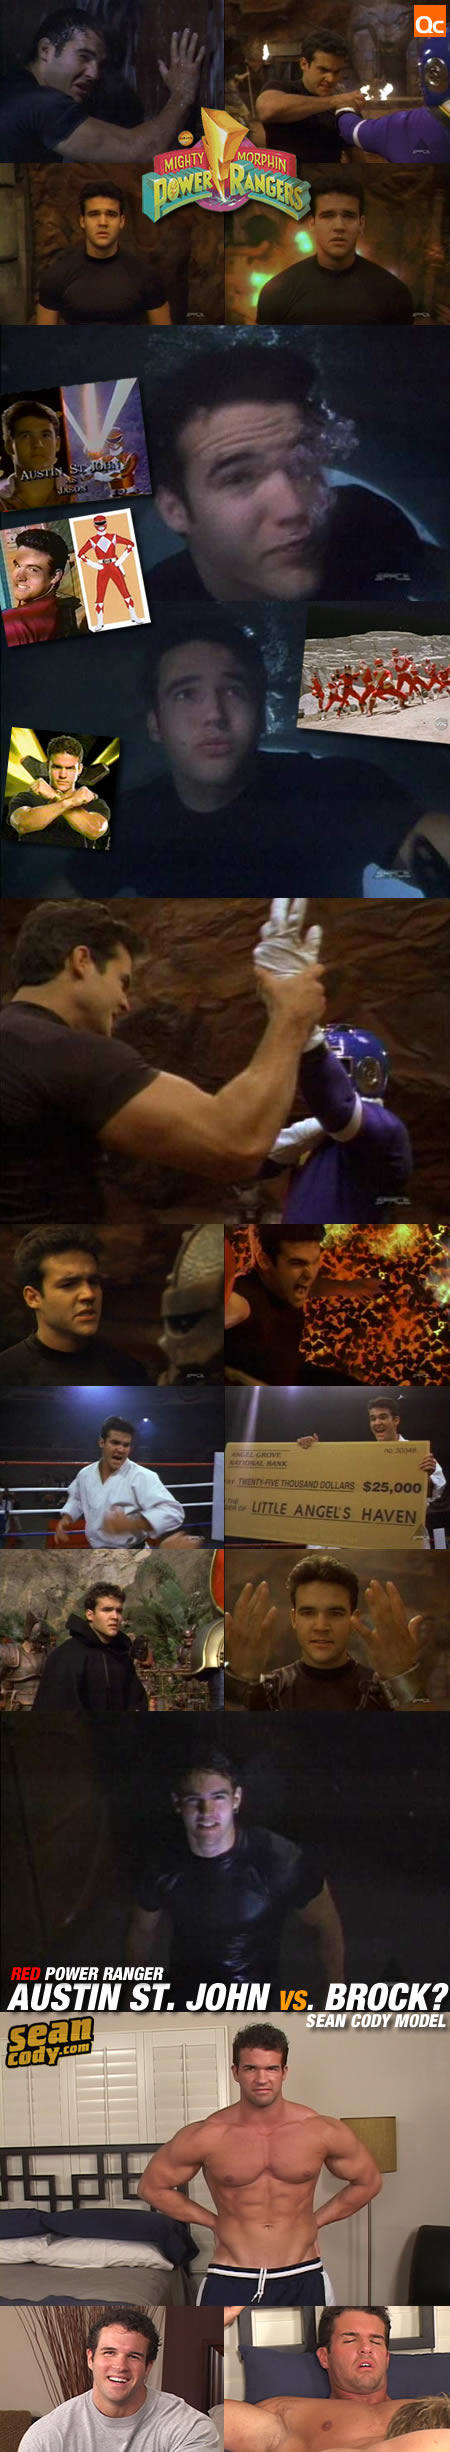 Austin St. John vs. Brock